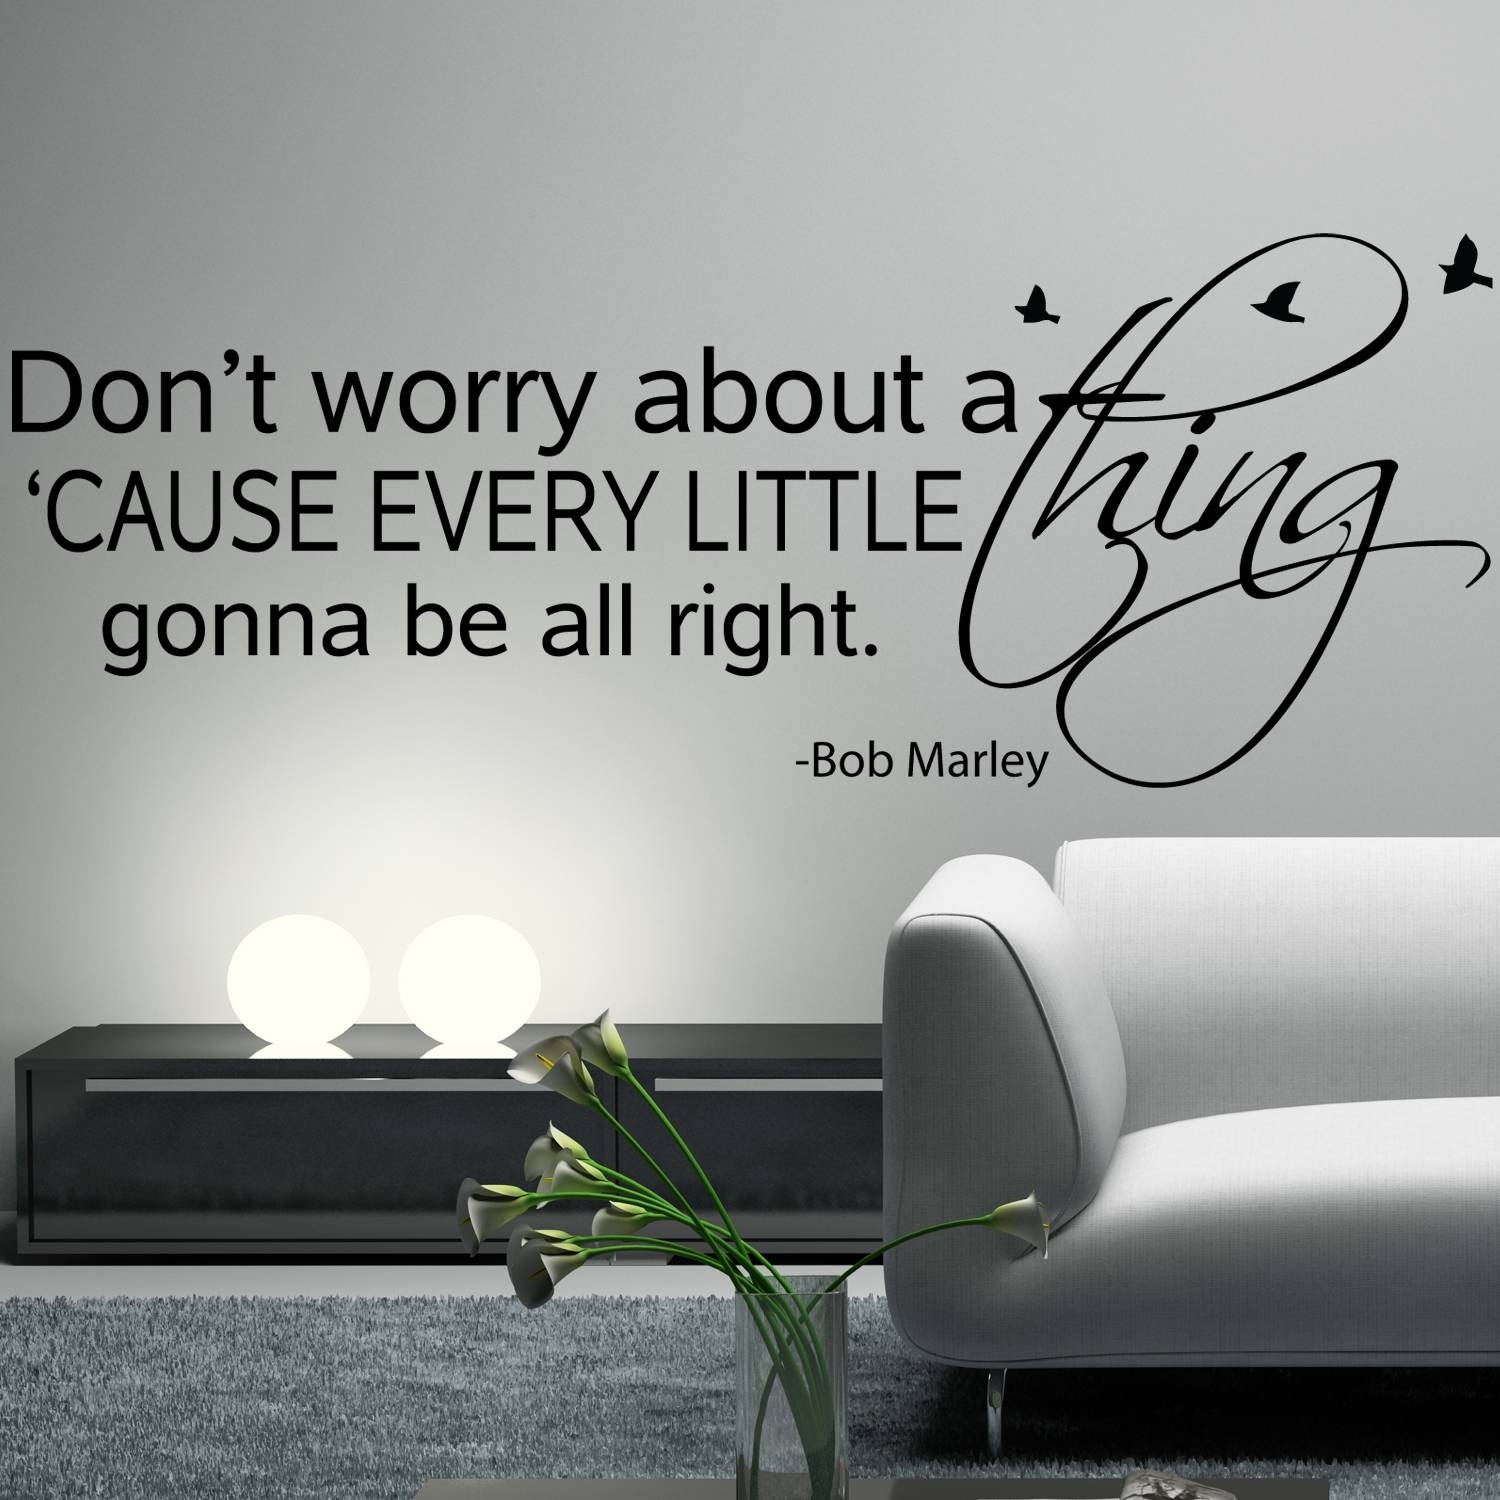 Bob Marley Wall Decal Sticker Art Vinyl Quote Don't Worry About A Intended For Most Current Bob Marley Wall Art (View 17 of 30)